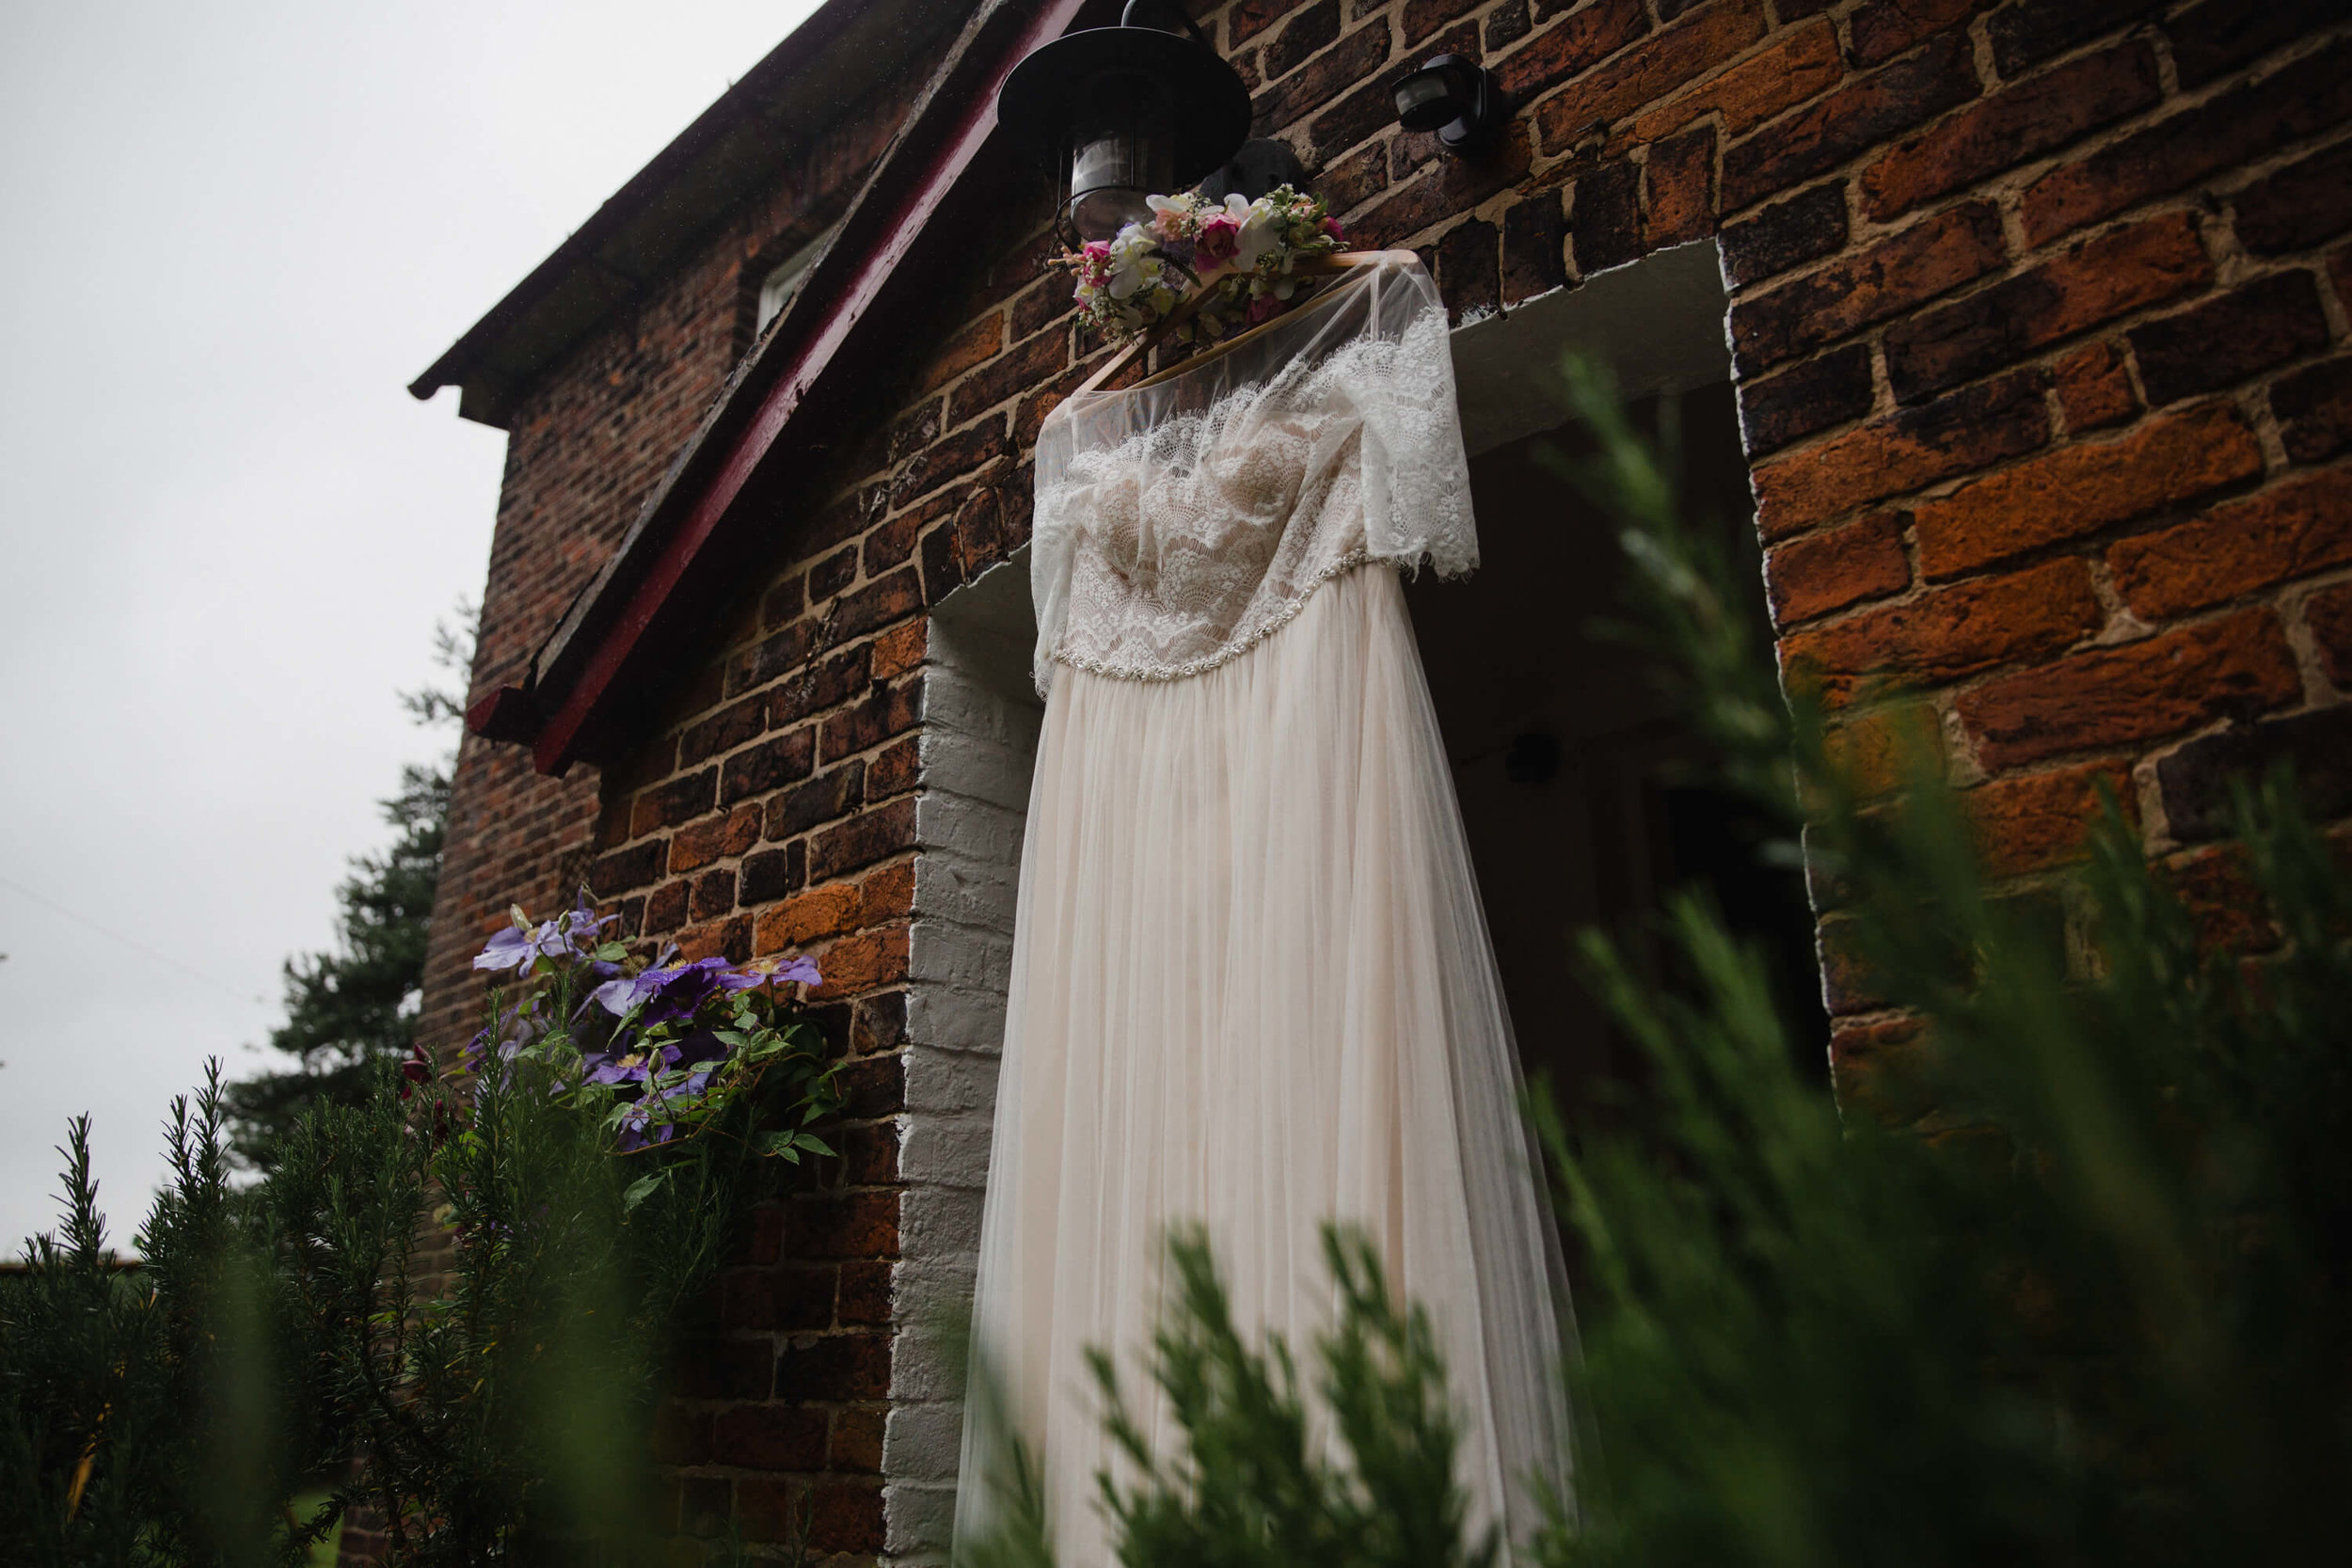 wide angle lens photograph of wedding gown hung in doorway with floral wreath head dress